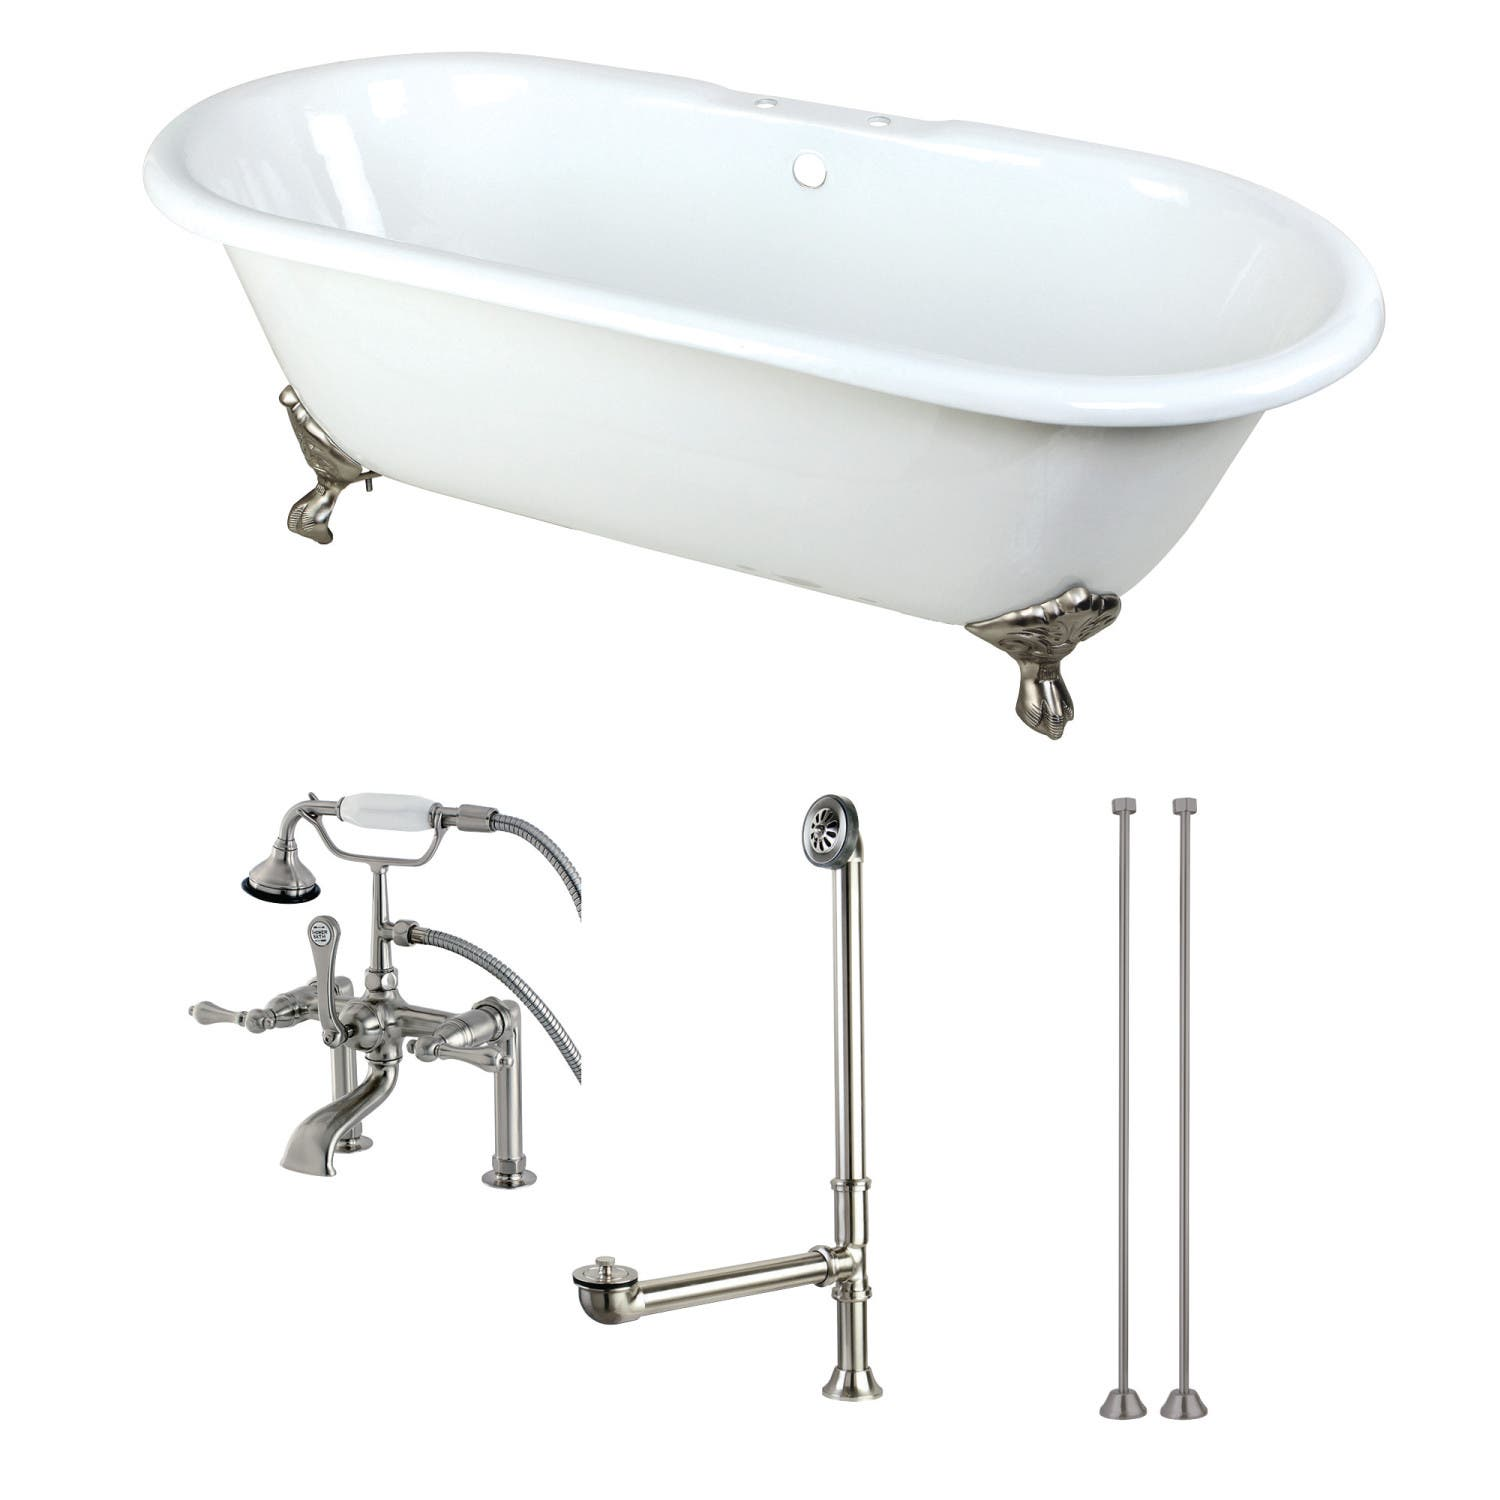 Kingston Brass Aqua Eden 66 Inch Cast Iron Clawfoot Tub With Faucet